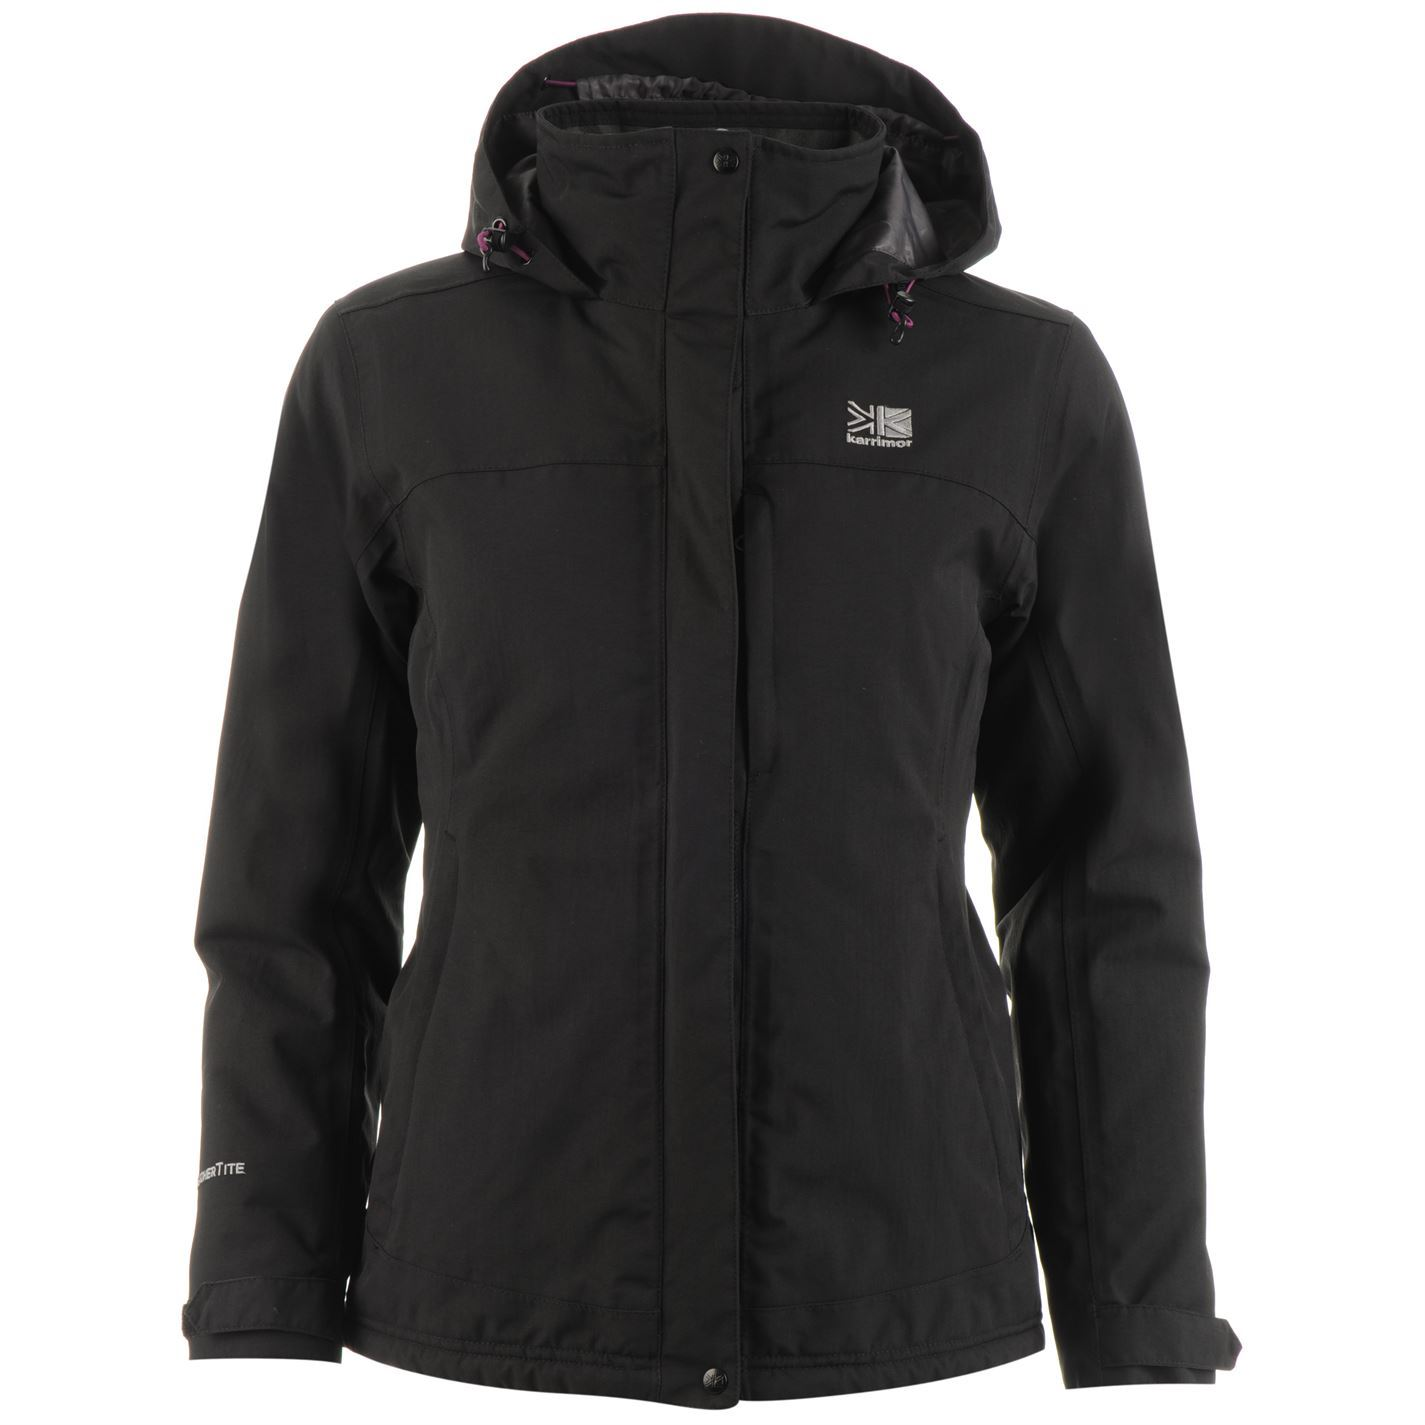 Details about Karrimor Womens Padded Jacket Insulated Coat Top Long Sleeve  Funnel Neck 4432d558534b